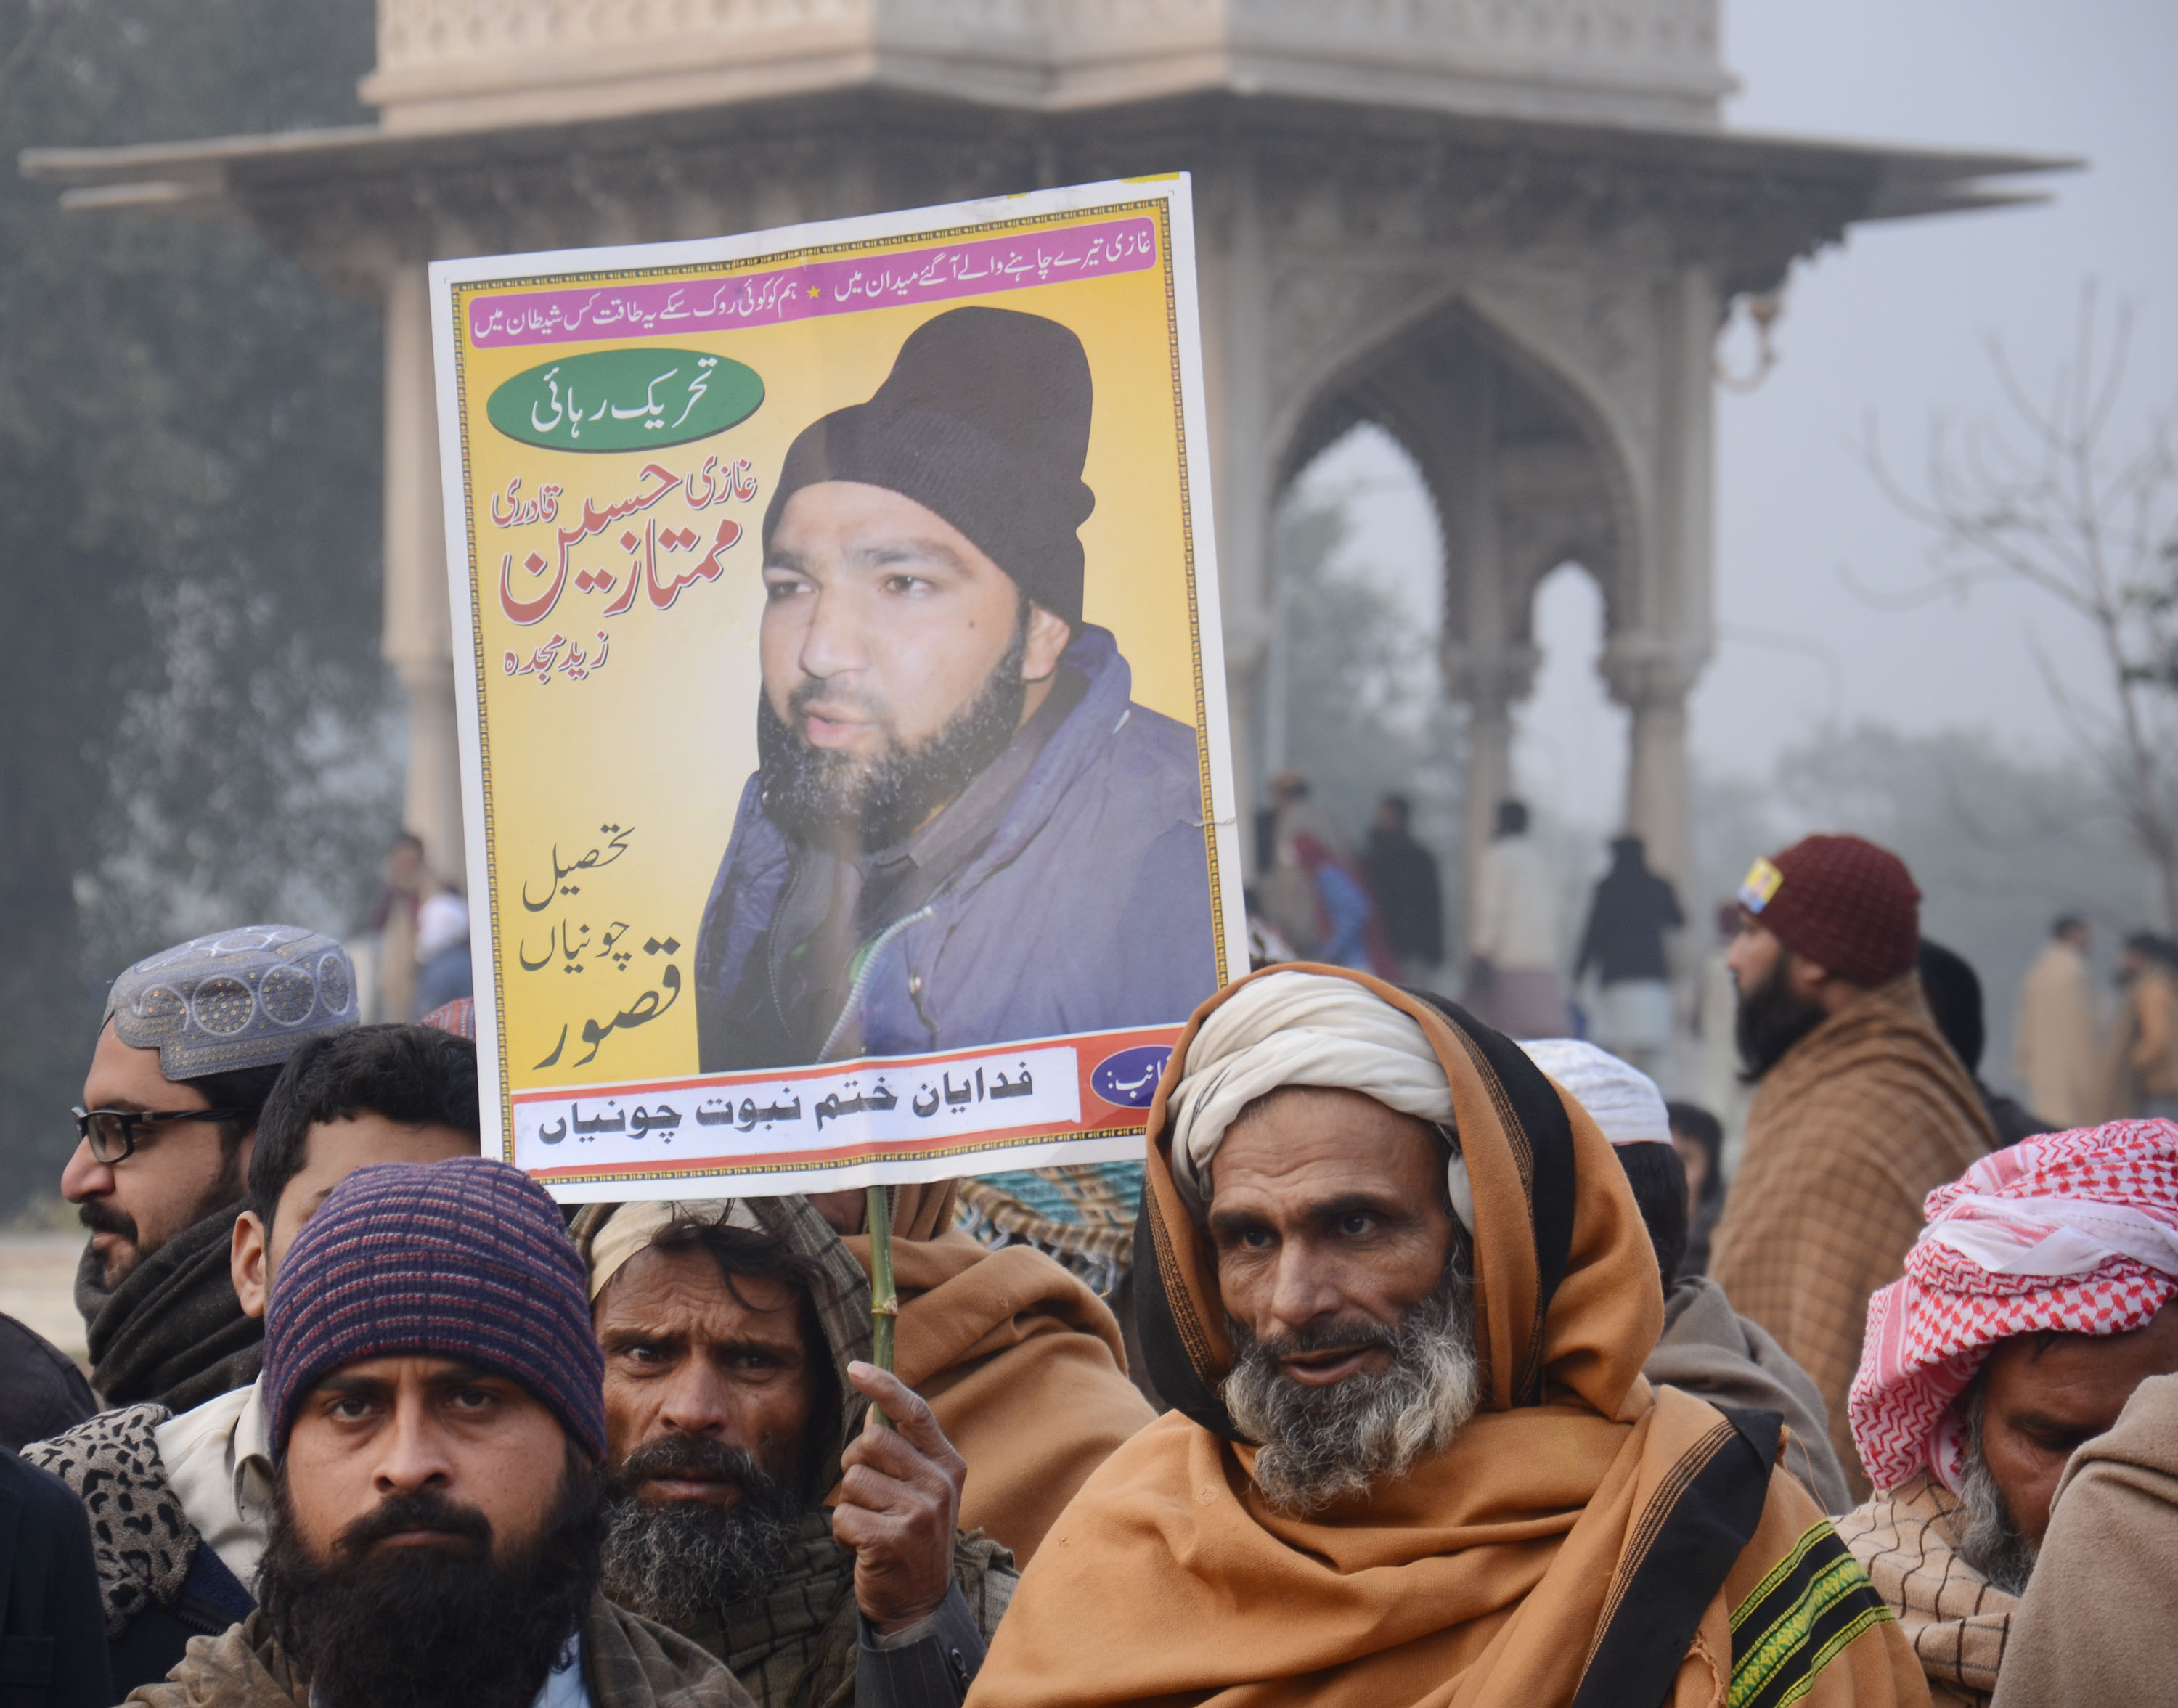 Activists from Pakistani religious groups chant slogans against the execution of Mumtaz Qadri during a rally in Lahore on Jan. 25, 2016